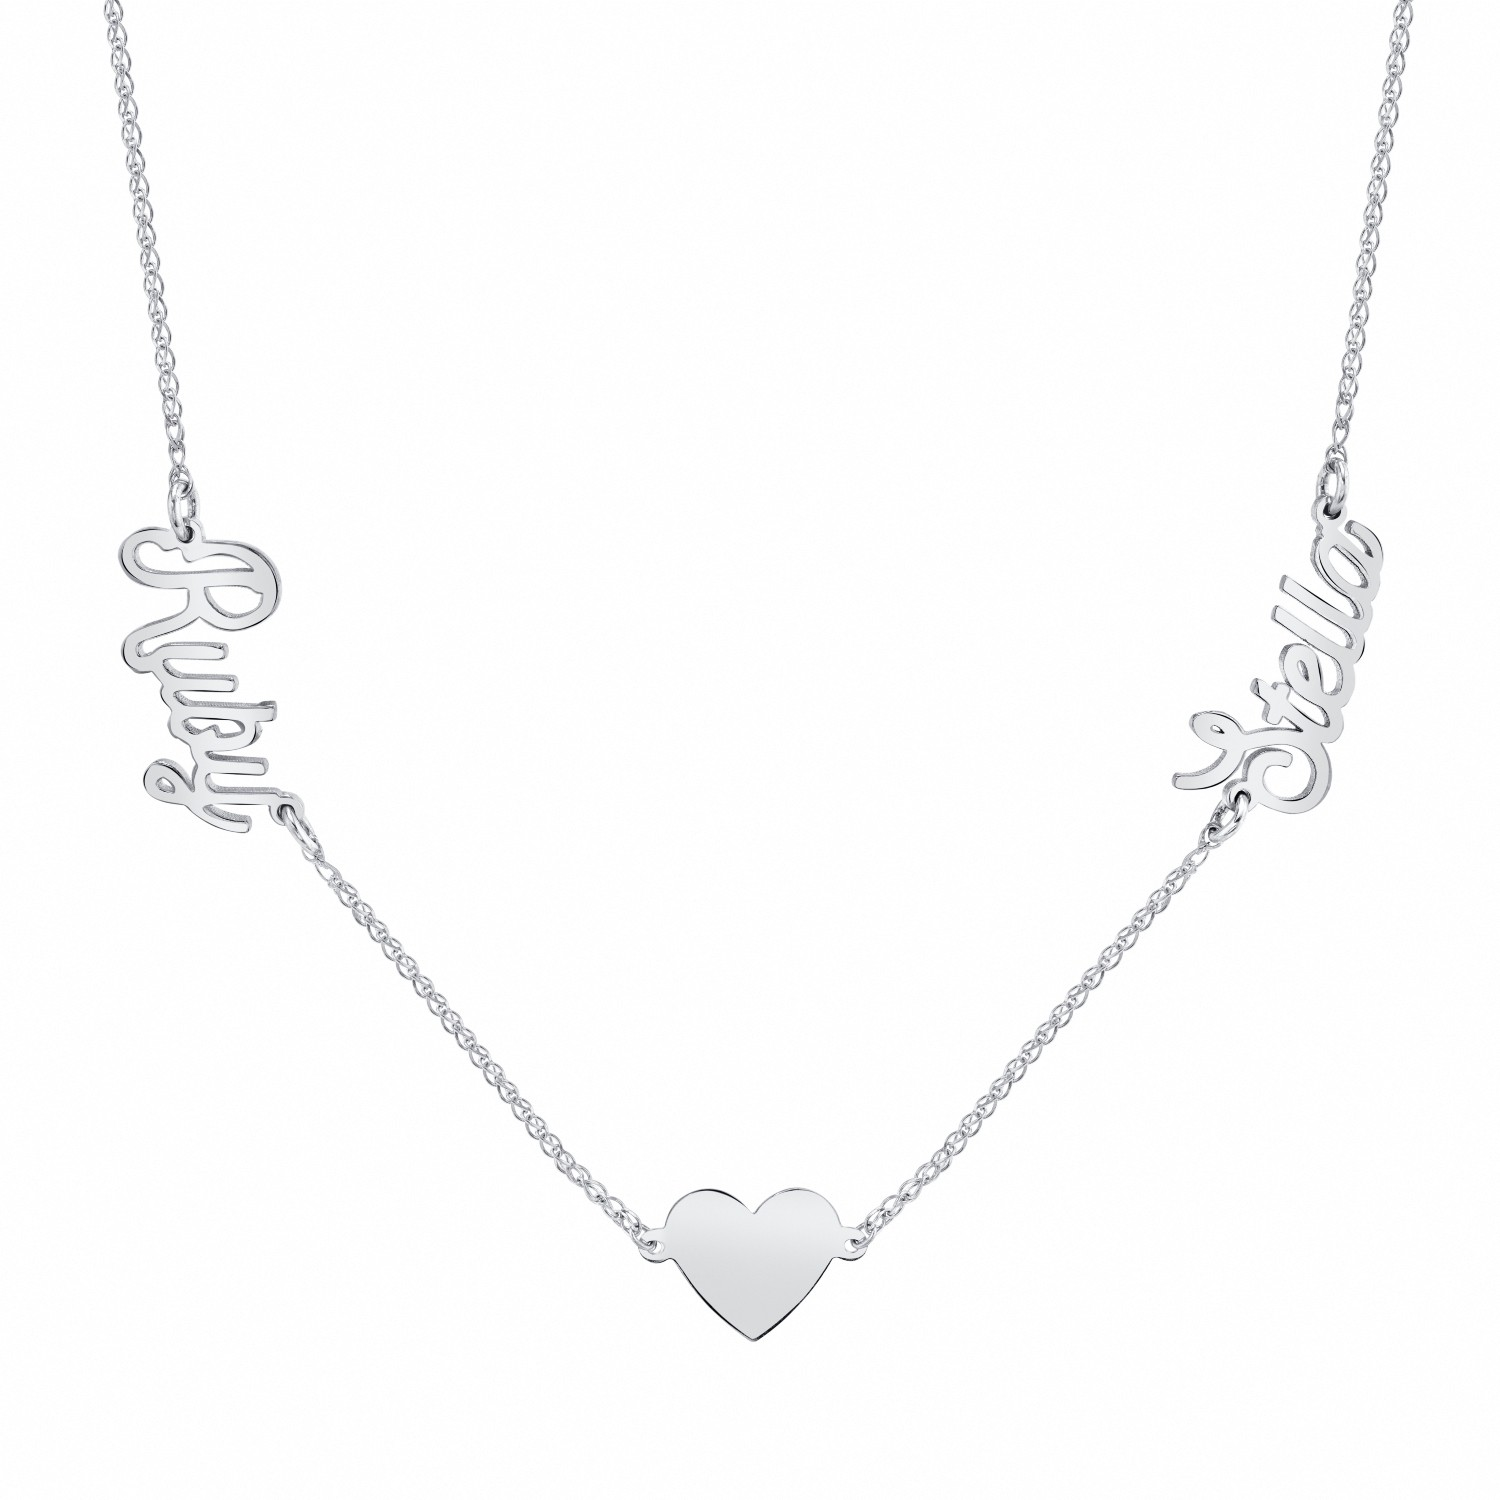 14k White Gold Personalized Script Nameplate Floating Heart Necklace